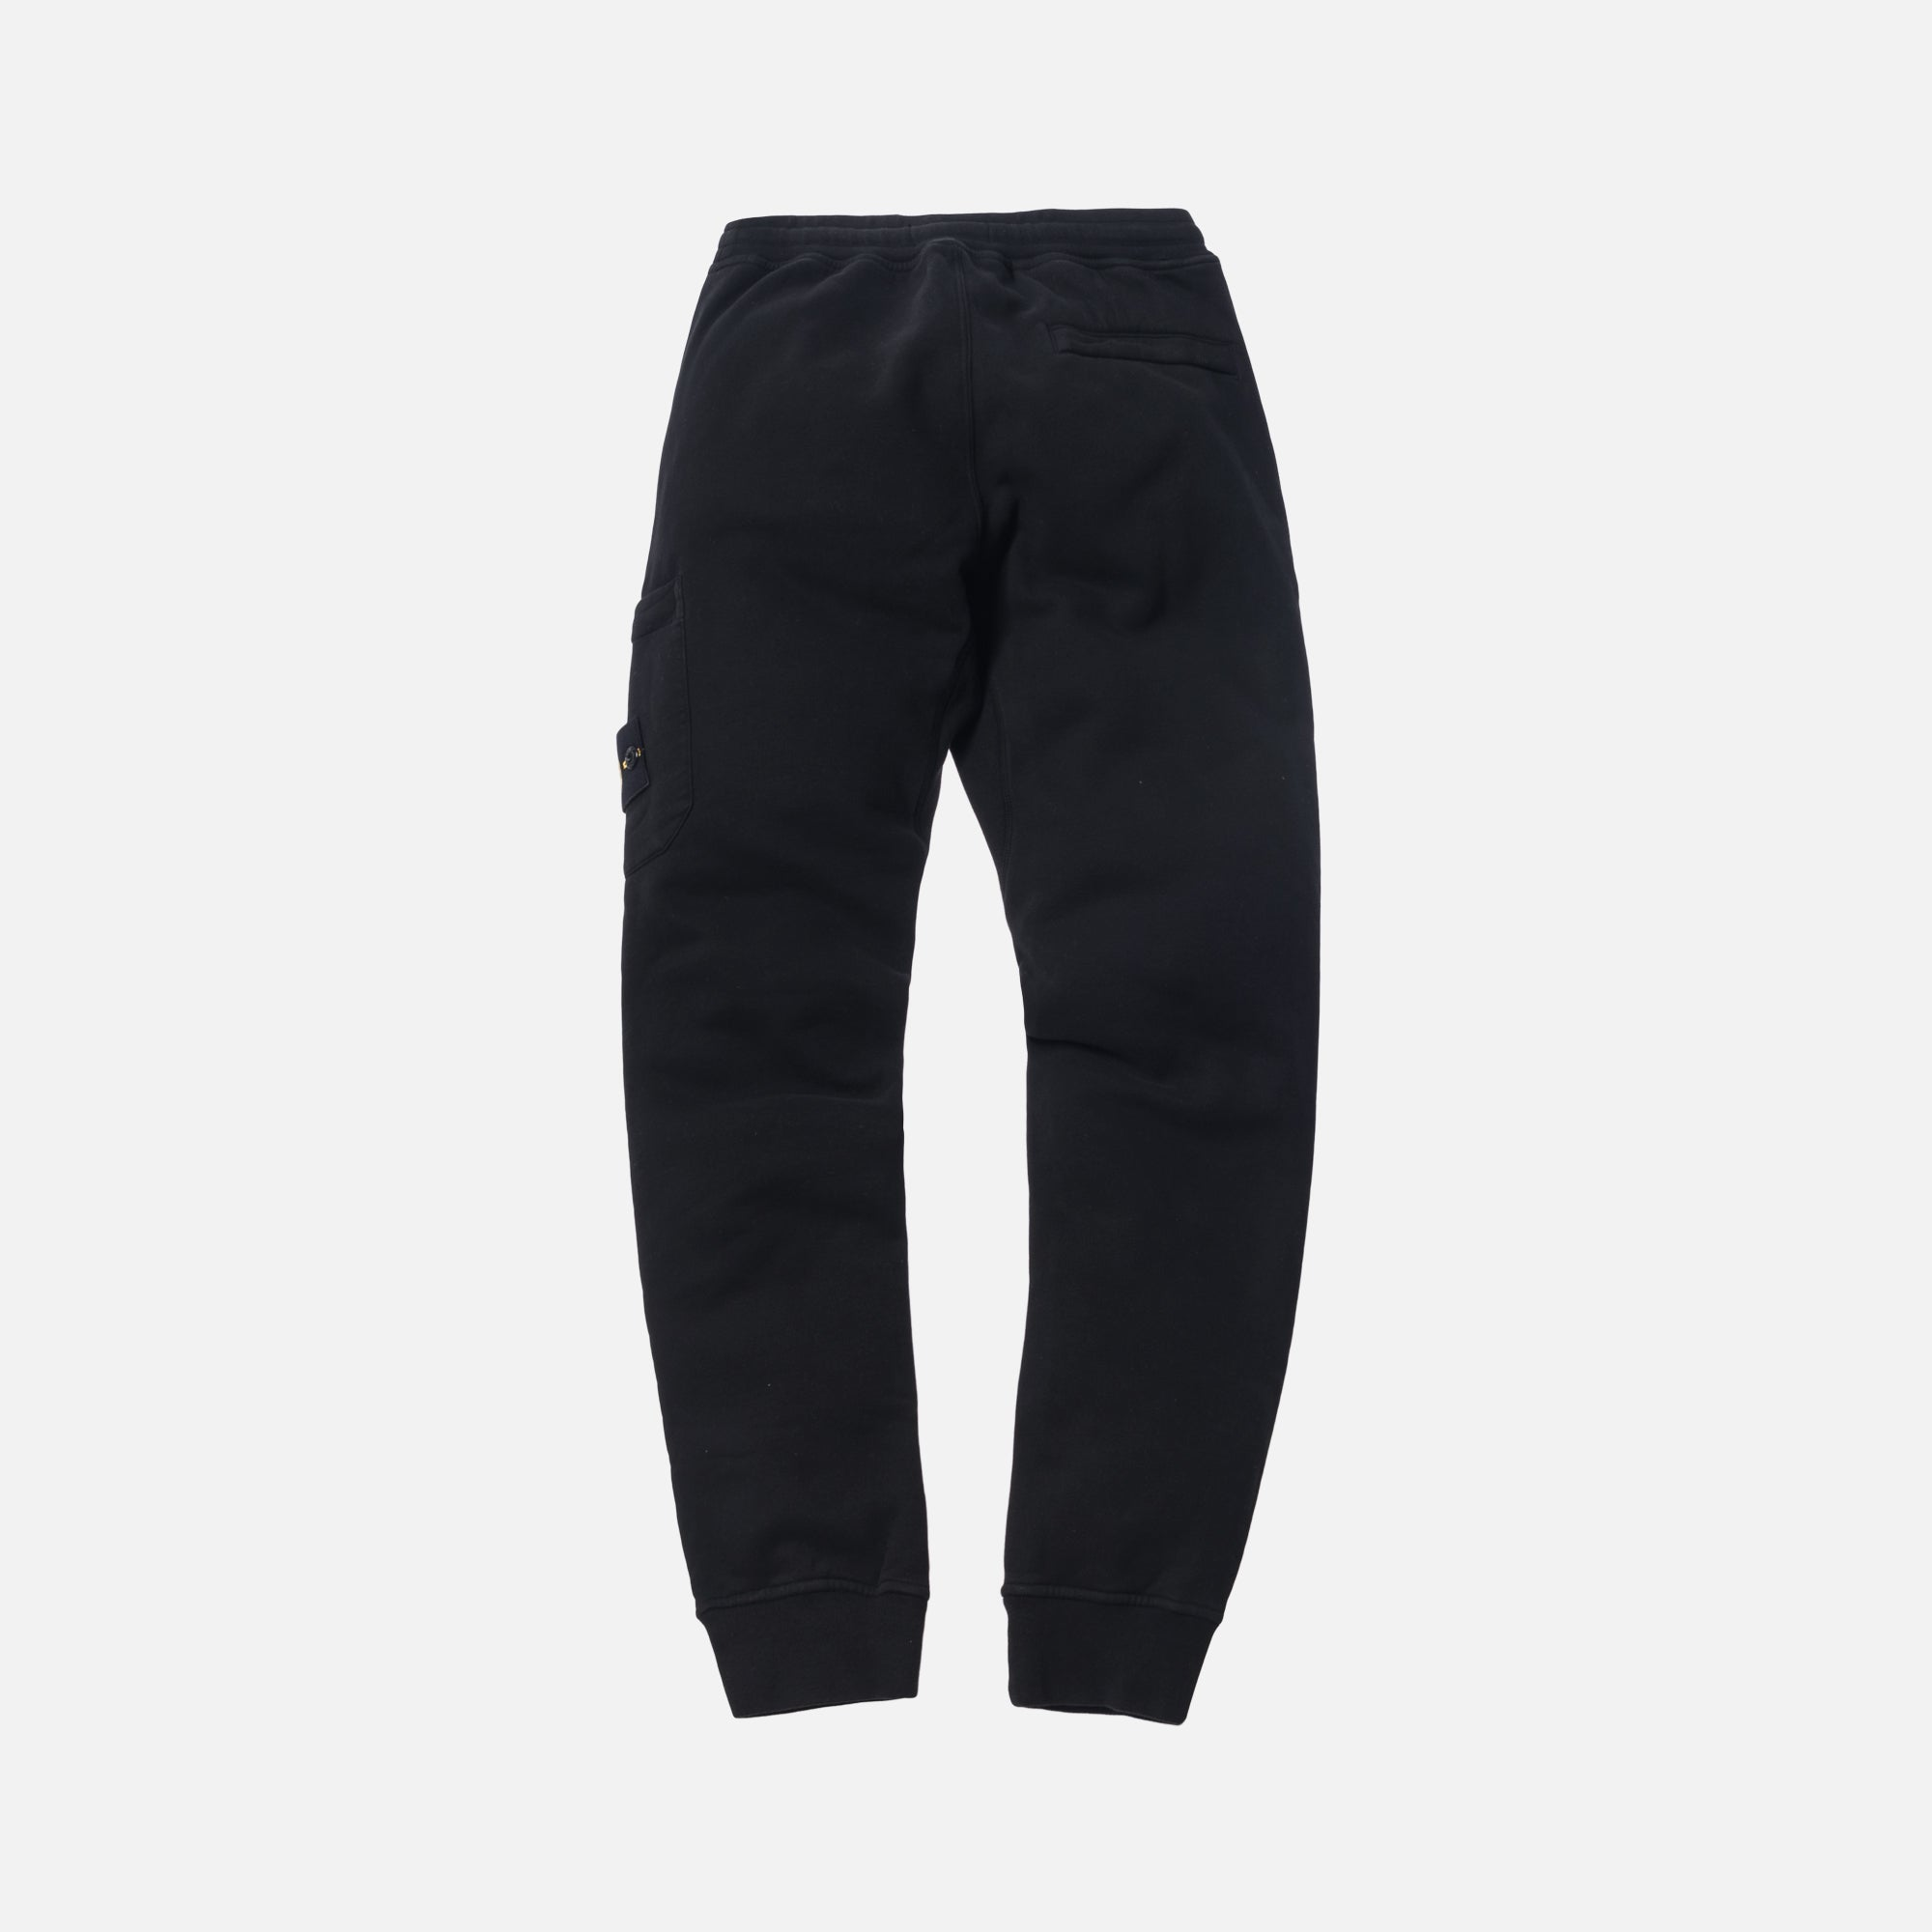 Stone Island Brushed Cotton Garment Dyed Sweatpant - Black